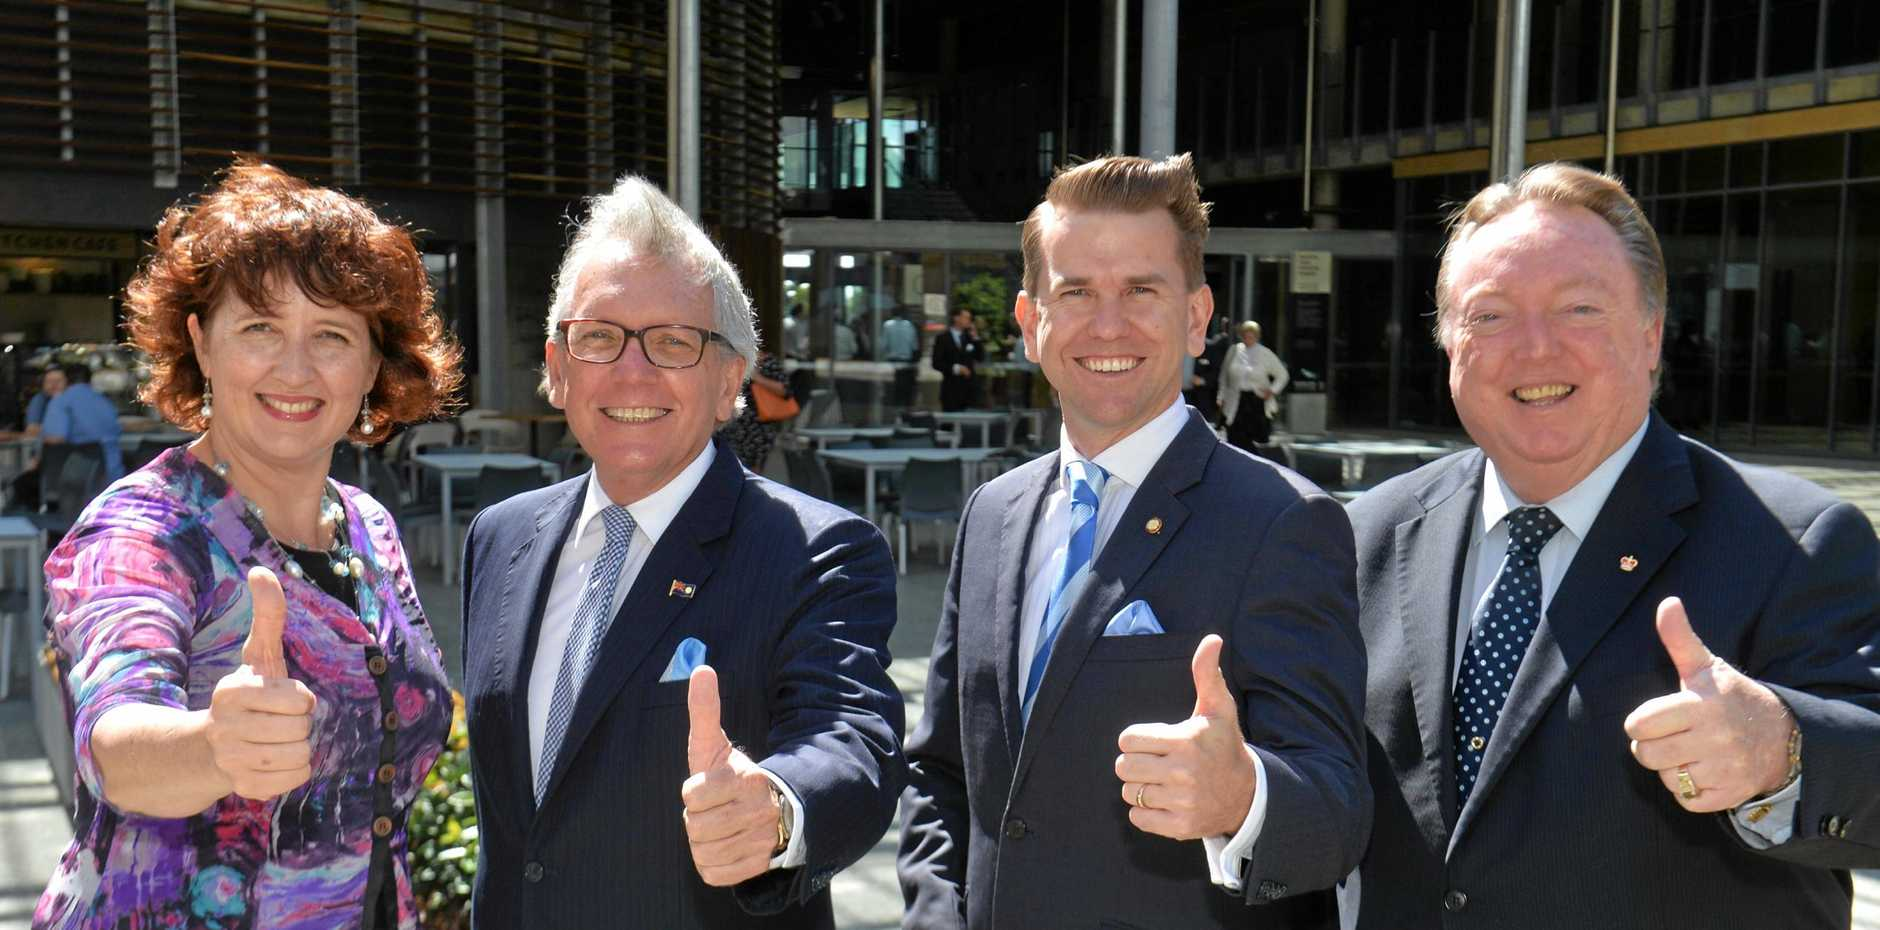 The expenses of Fiona Simpson, Mark McArdle, Jarrod BLeijie, and Glen Elmes have been revealed in a new report tabled in Queensland Parliament.